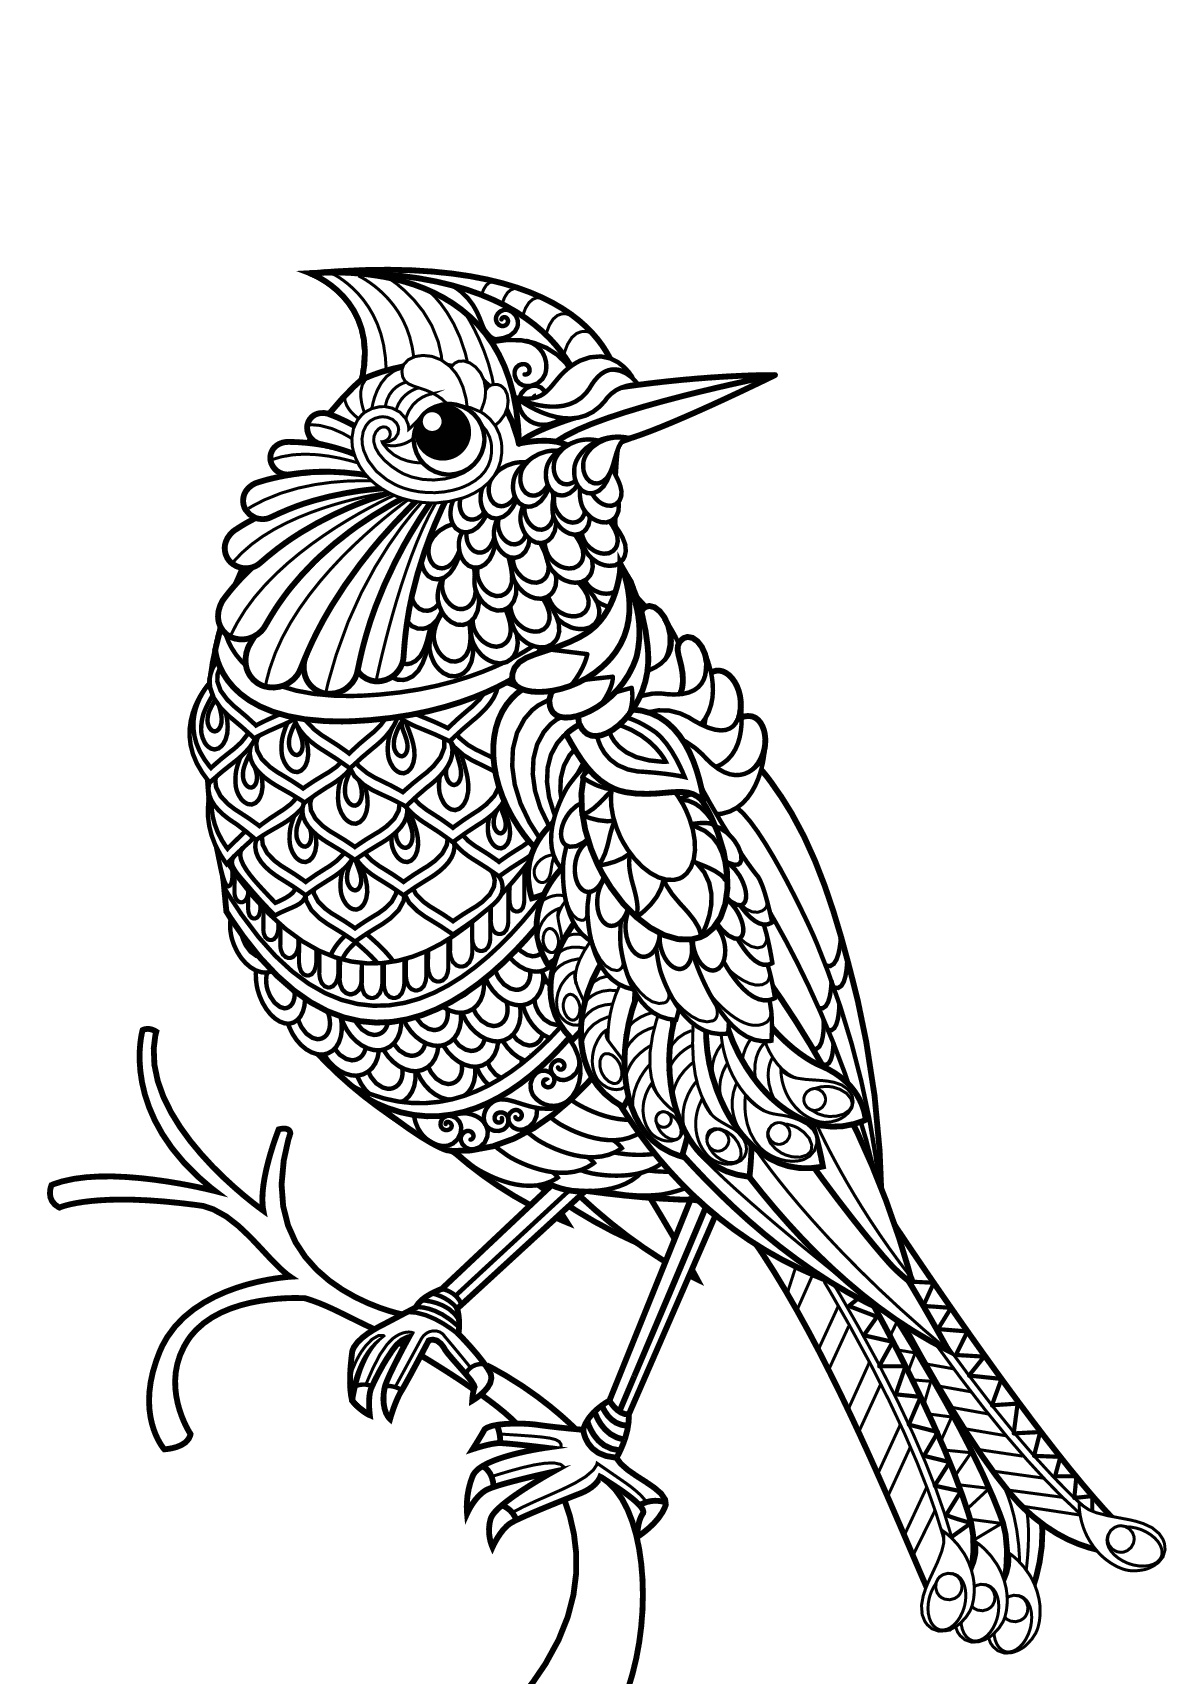 coloring bird for kids birds free to color for children birds kids coloring pages kids coloring bird for